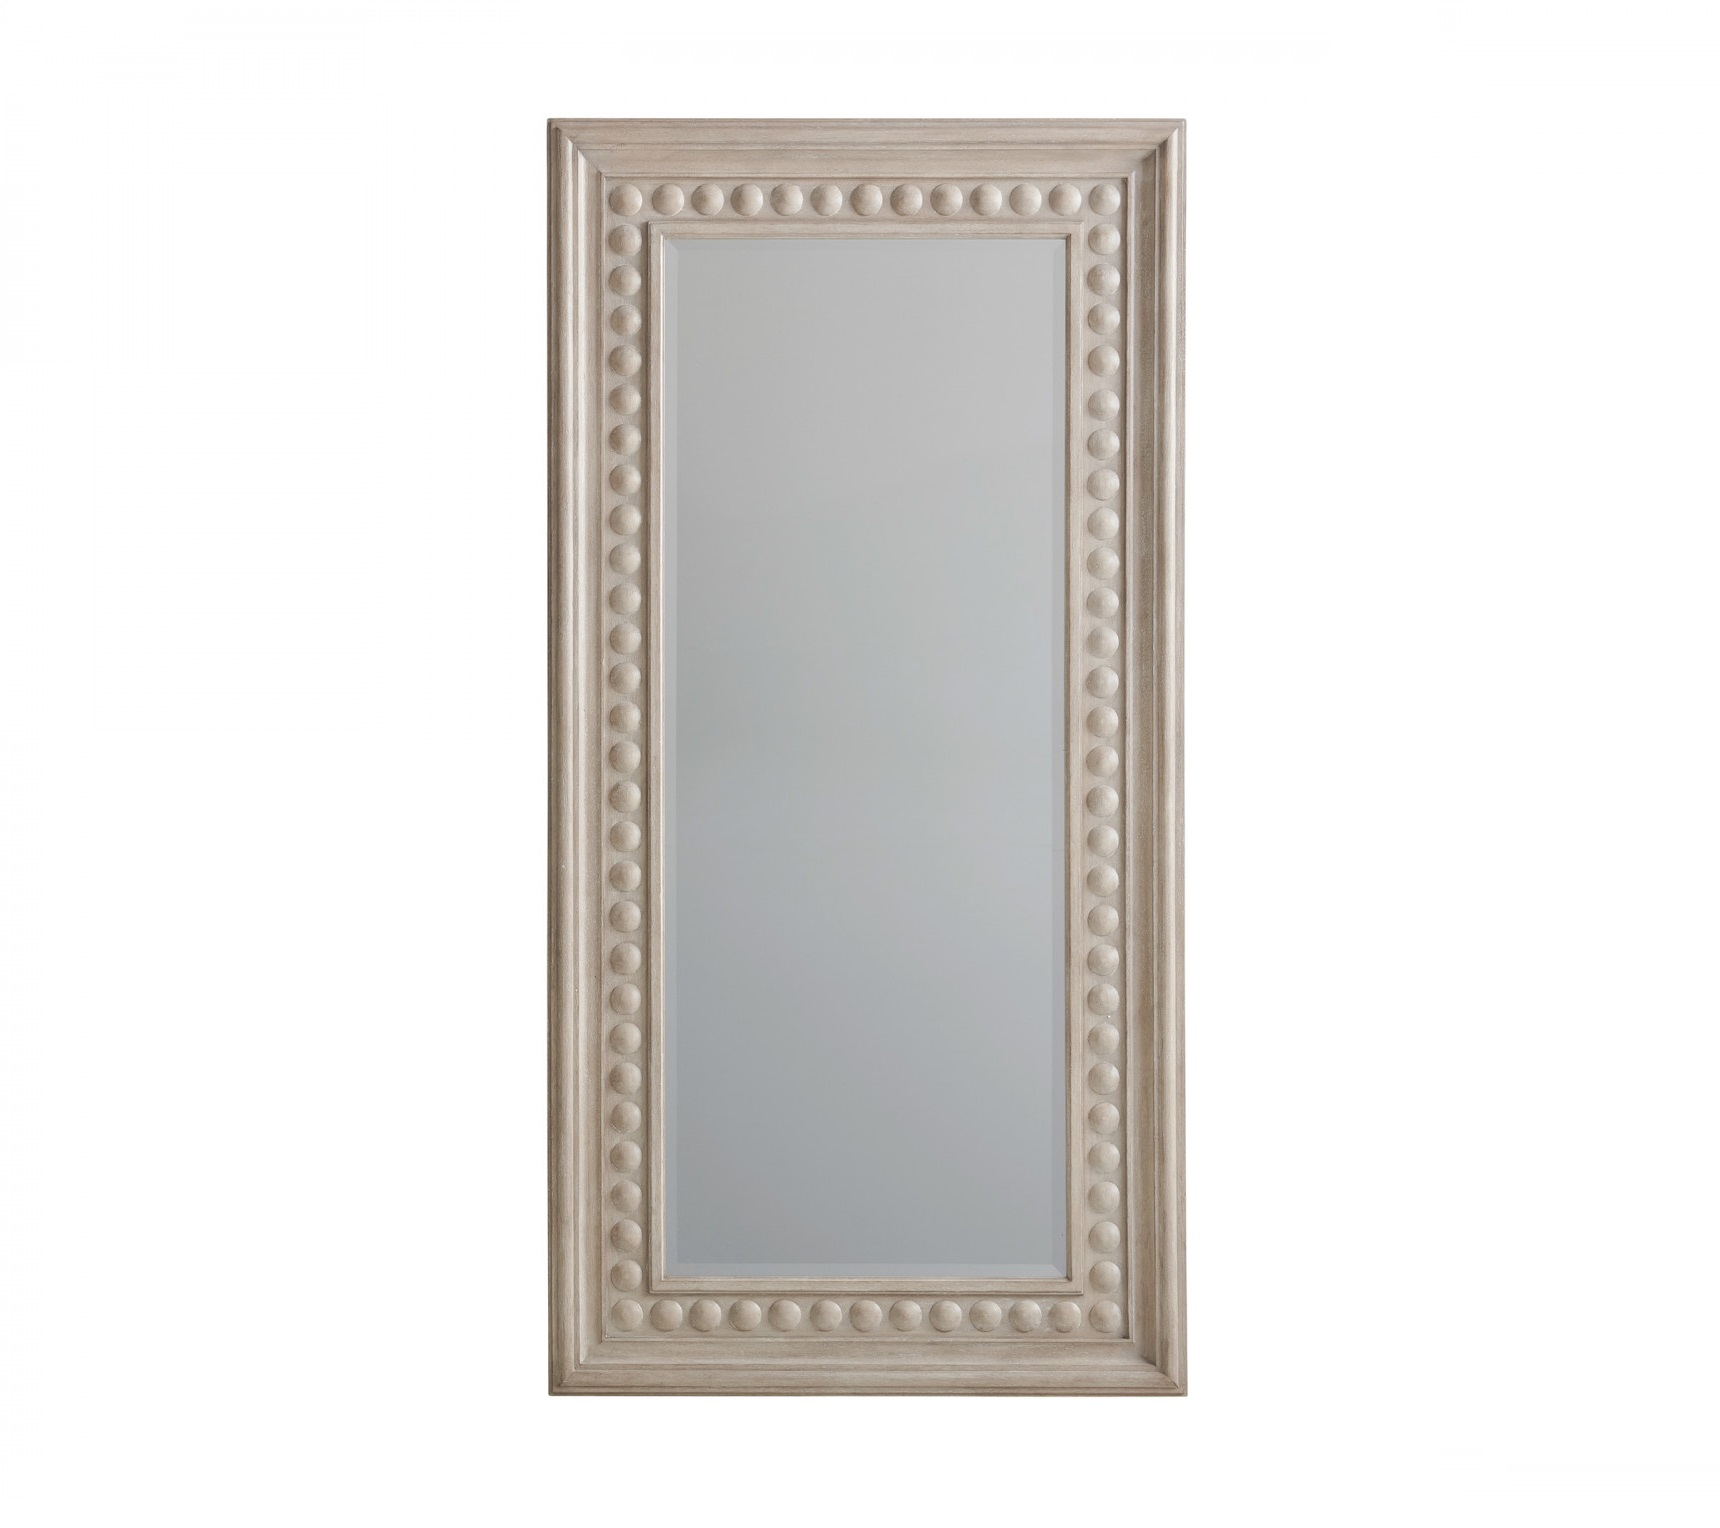 Carbon Floor Mirror , Lexington Cheap Decorative Mirrors For Living Room,Brooklyn, New York, Furniture By ABD